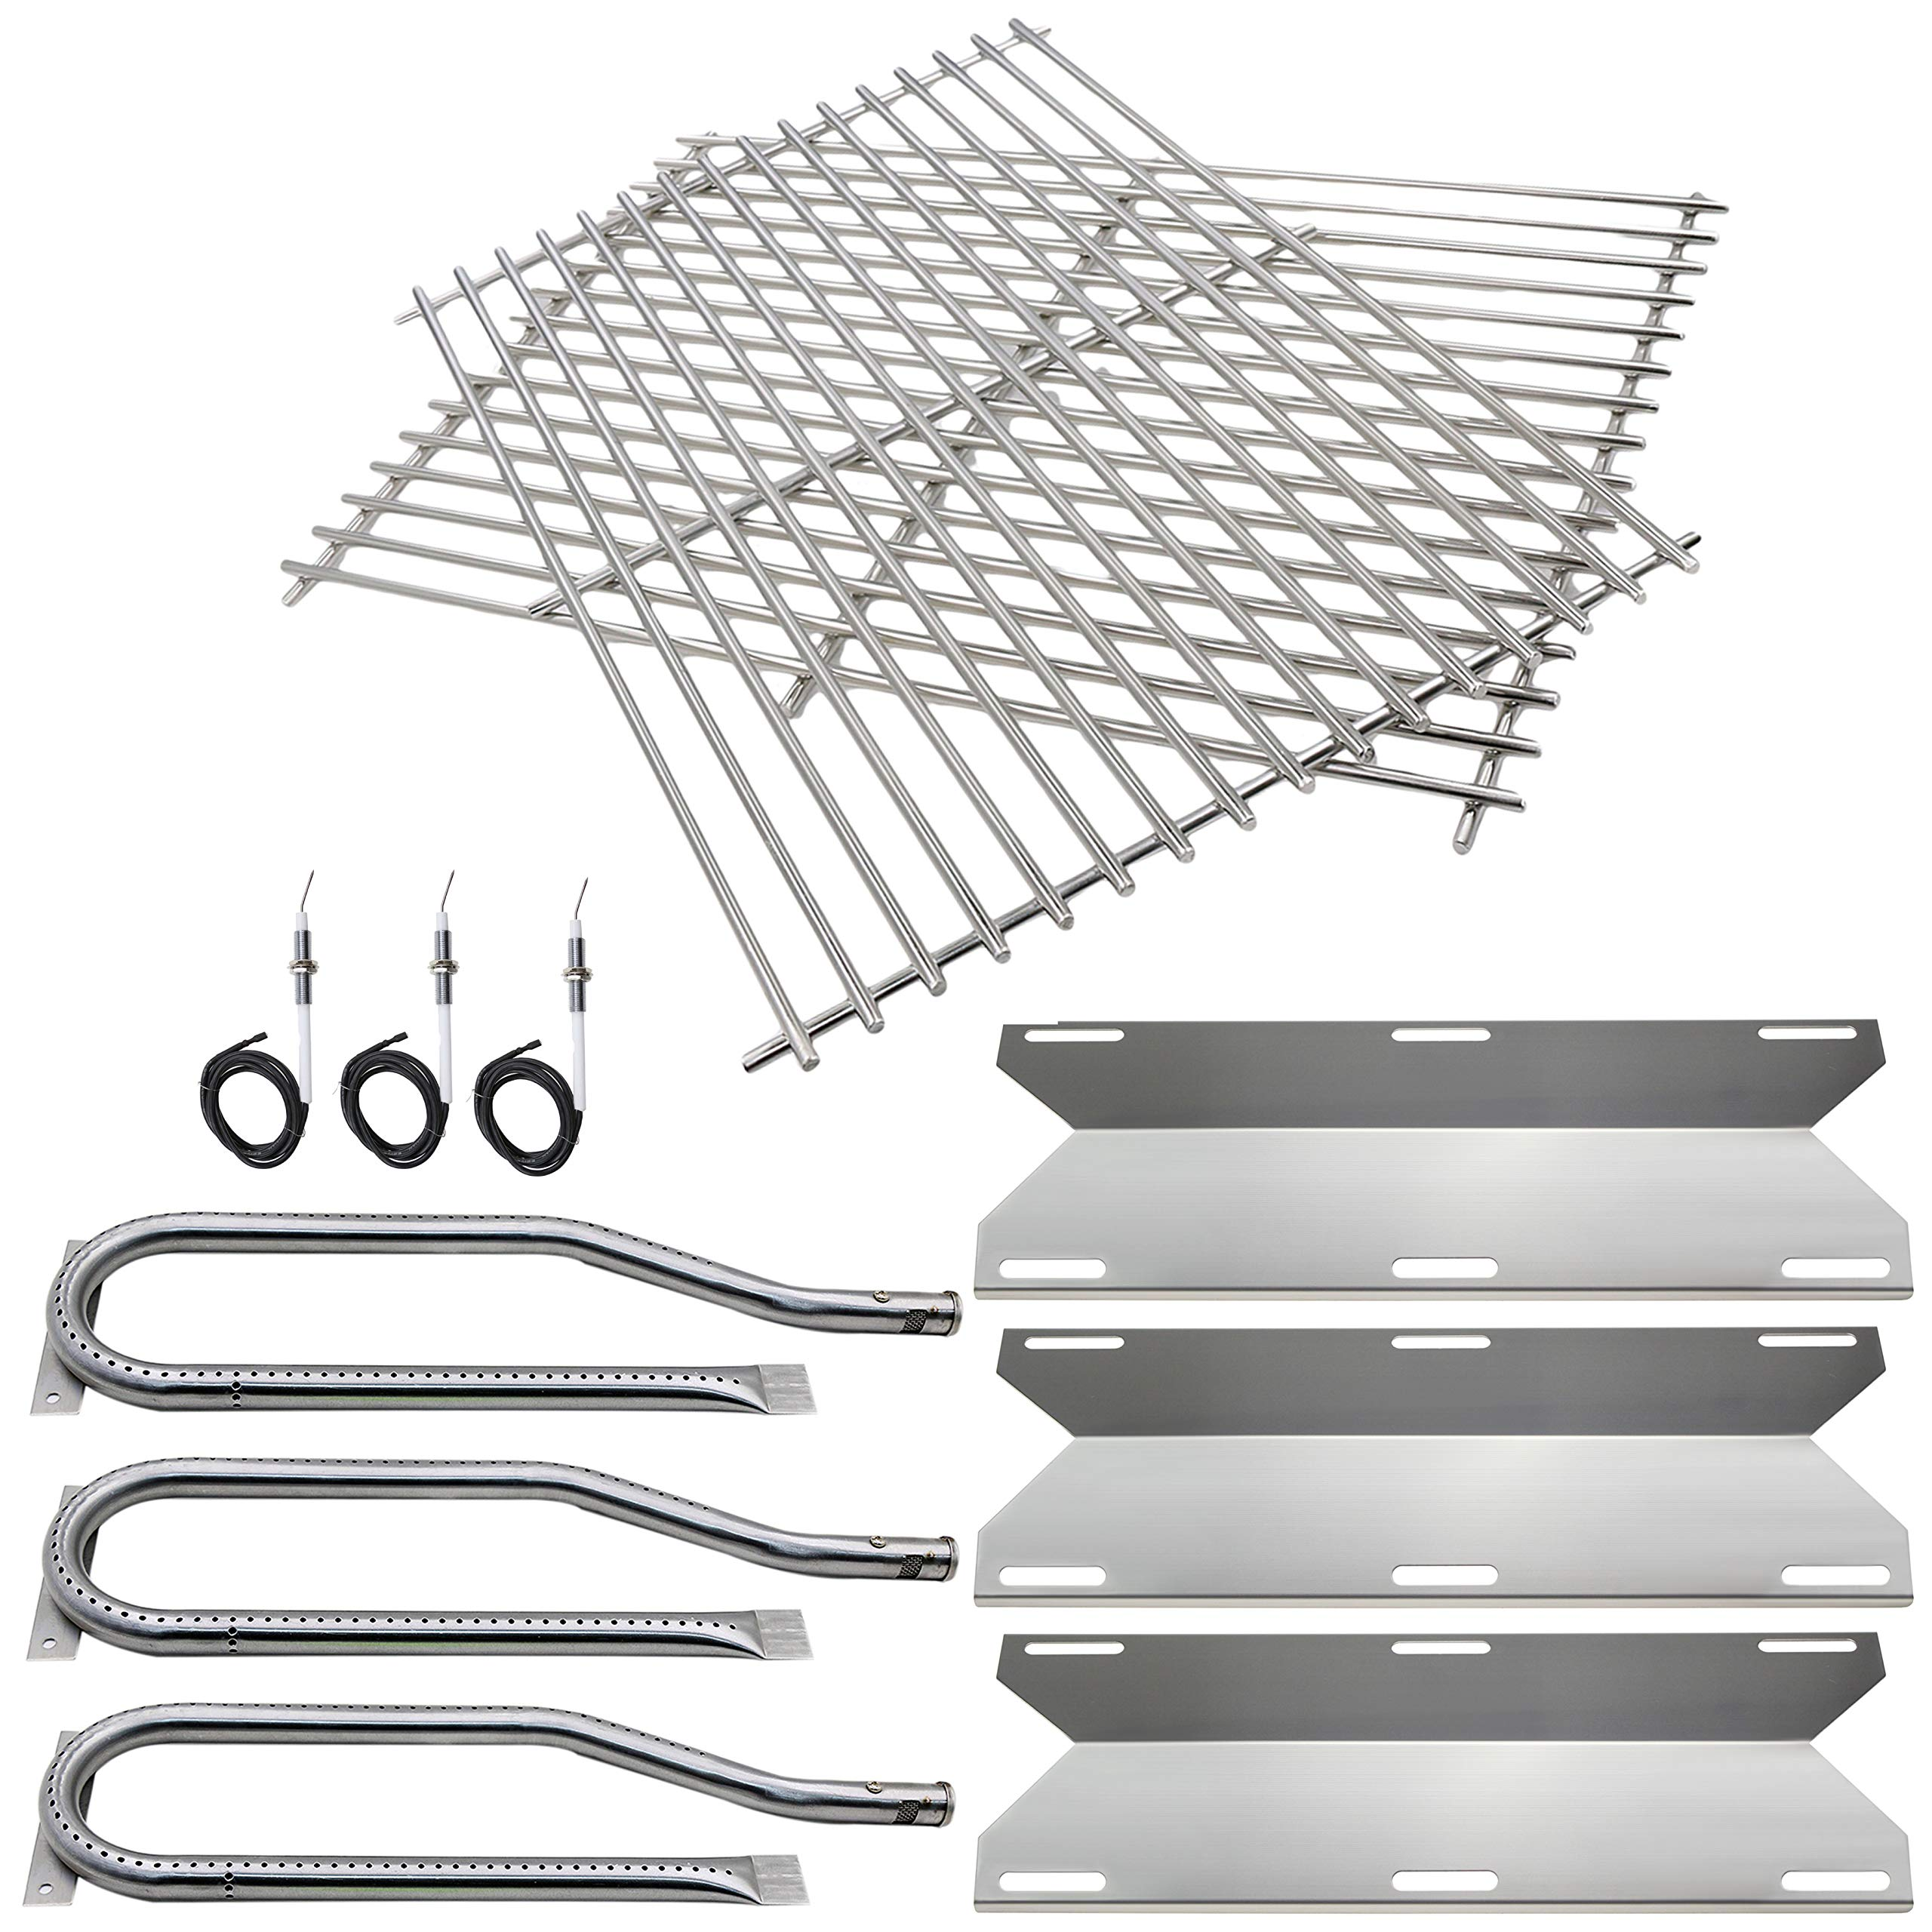 Hisencn BBQ Repair Kit Replacement for Jenn Air Gas Grill 720-0336, 7200336, 720 0336 Grill Stainless Steel Burners,Stainless Steel Heat Plates Stainless Steel Cooking Grid Grates & igniters